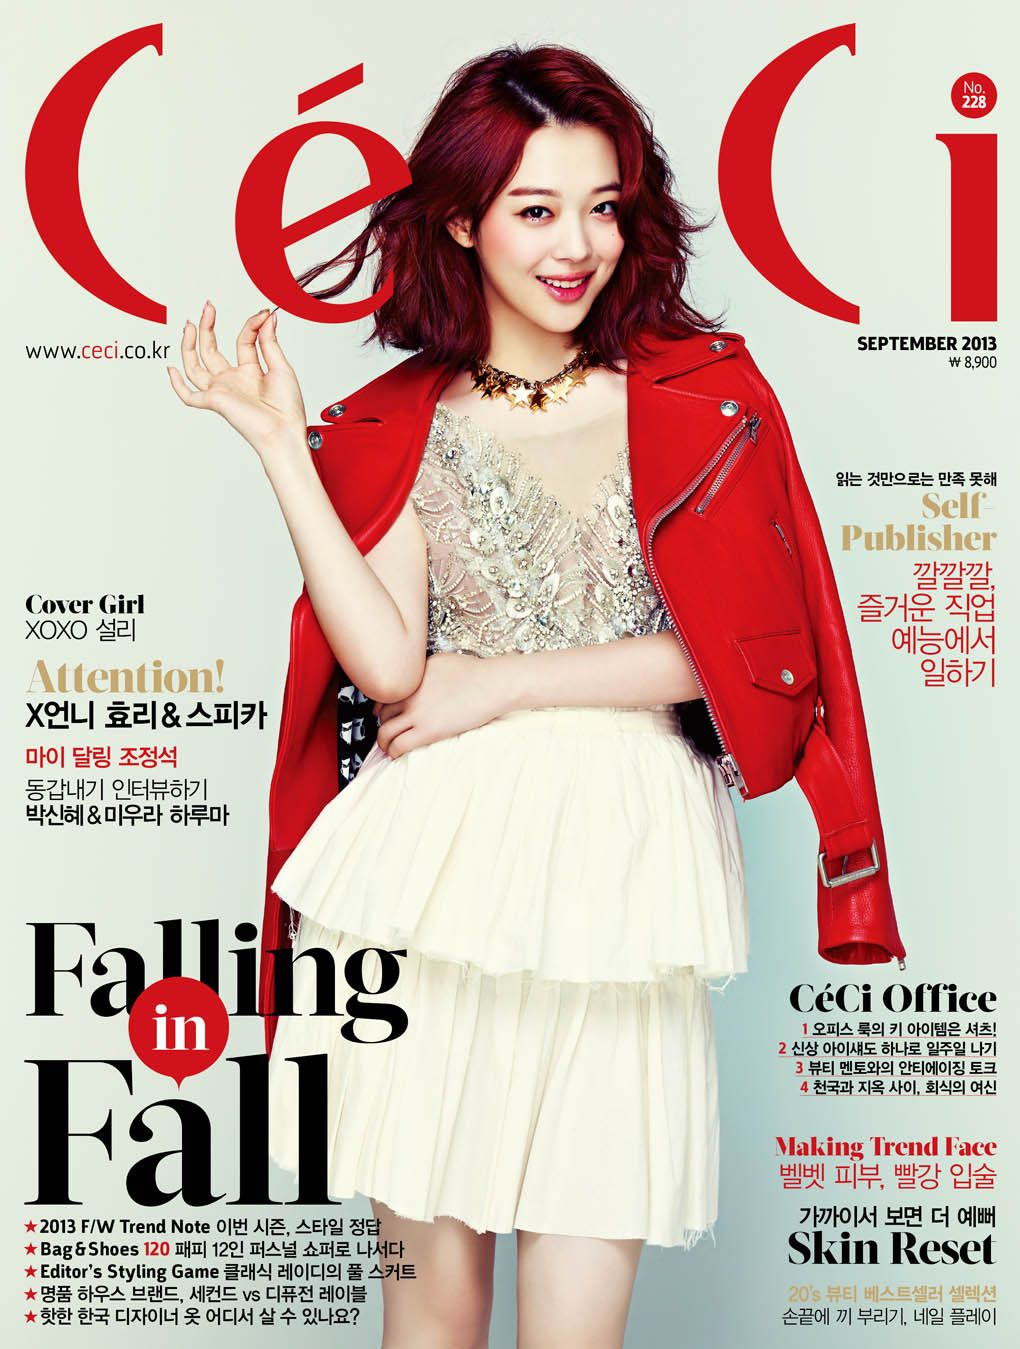 Ceci Magazine Is Going Out Of Print Here Are Some Of Its